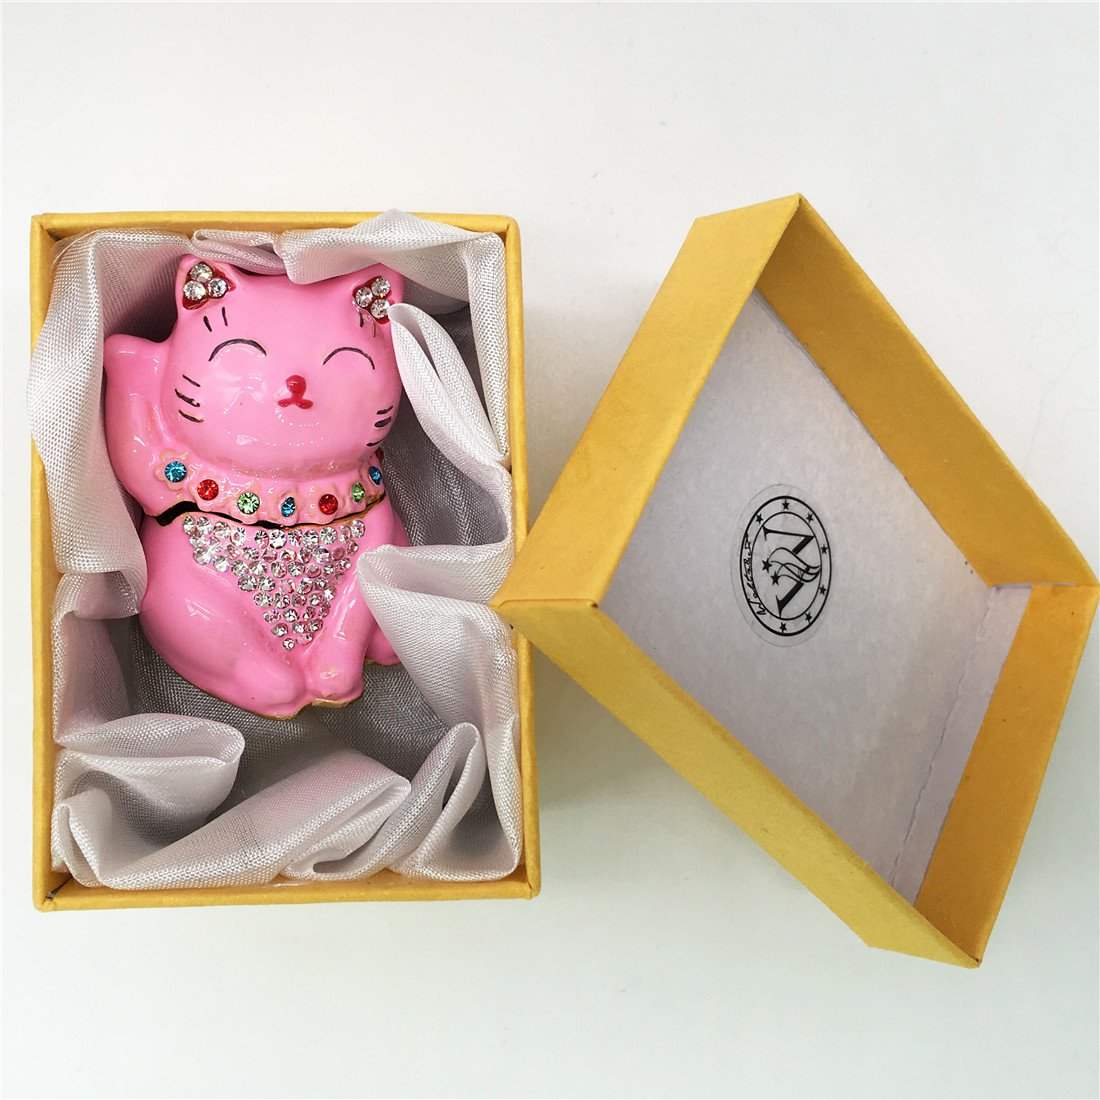 Waltz&F Pink Lucky Cat Figurine Collectible Animal Hinged Trinket Box Bejeweled Hand-painted Ring Holder